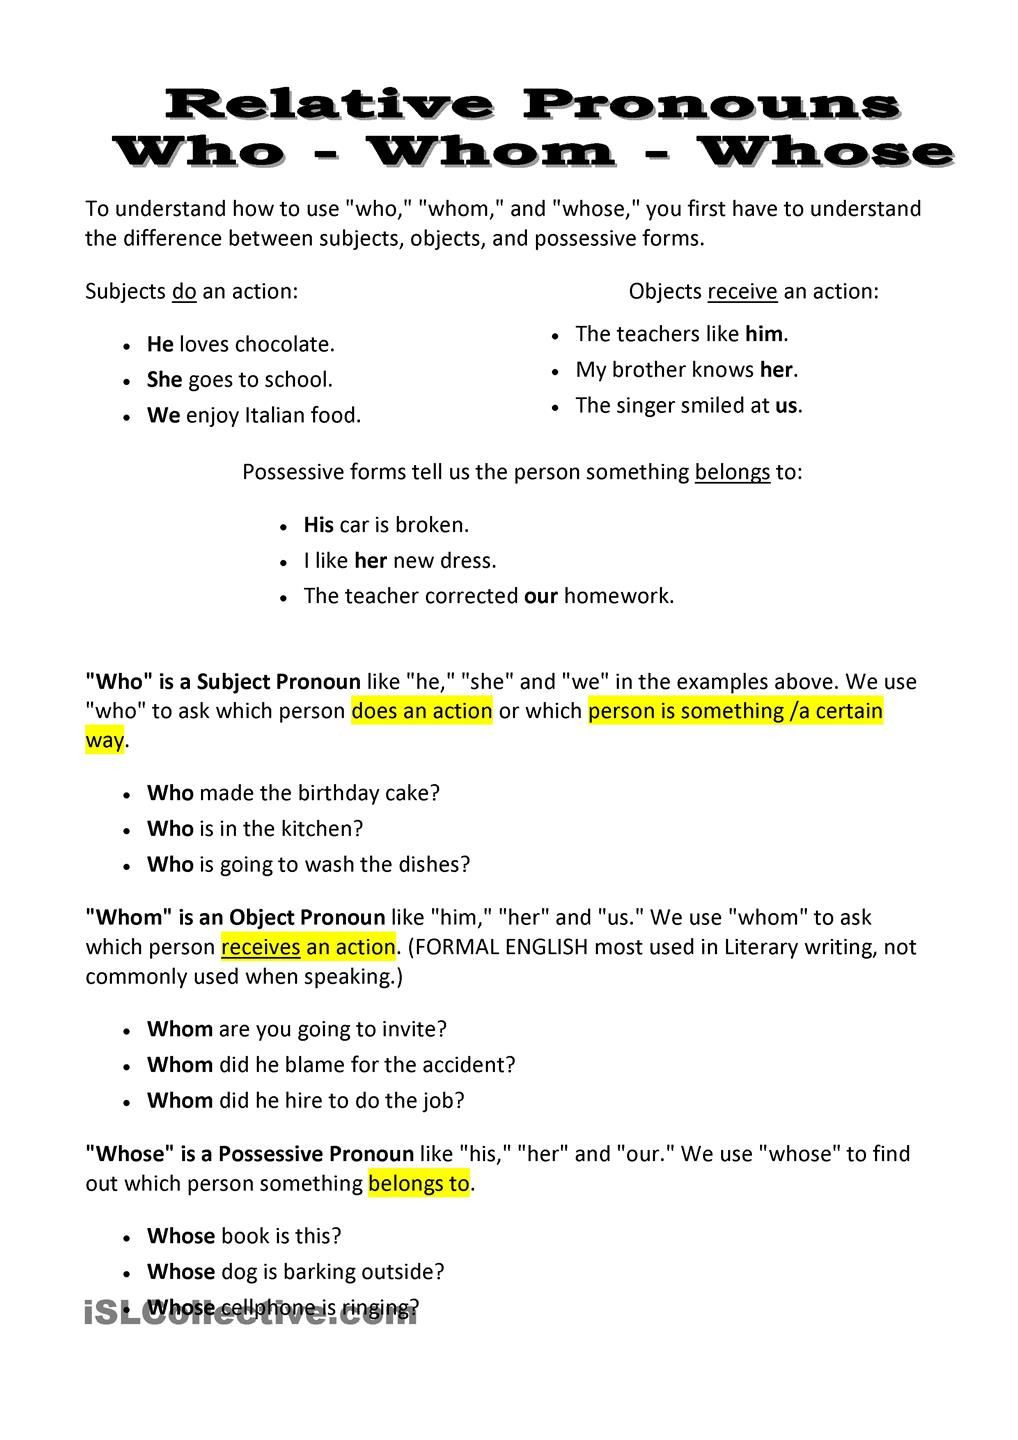 Relative Pronoun Worksheets 4th Grade Relative Pronouns who whom whose